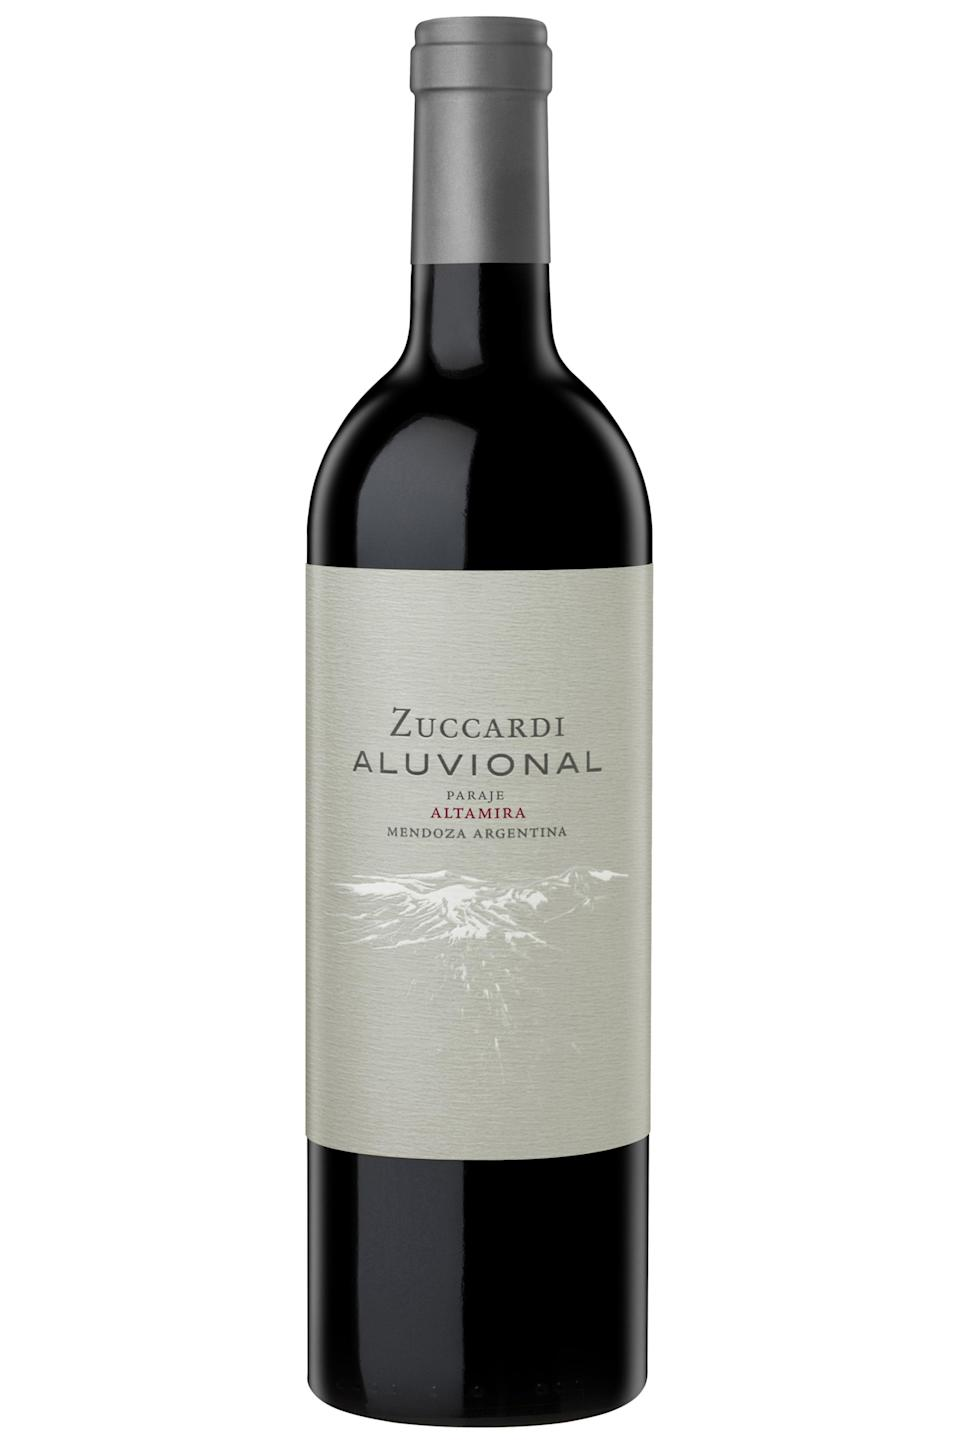 """<p>wine.com</p><p><strong>$84.99</strong></p><p><a href=""""https://go.redirectingat.com?id=74968X1596630&url=https%3A%2F%2Fwww.wine.com%2Fproduct%2Fzuccardi-aluvional-altamira-malbec-2014%2F525366&sref=https%3A%2F%2Fwww.townandcountrymag.com%2Fleisure%2Fdrinks%2Fg32392235%2Fbest-red-wine%2F"""" rel=""""nofollow noopener"""" target=""""_blank"""" data-ylk=""""slk:Shop Now"""" class=""""link rapid-noclick-resp"""">Shop Now</a></p><p>""""It's worth paying up a bit to see the true character and potential of Malbec grown in choice vineyards at higher elevations, in this case in the Uco Valley sub-district,"""" Robinson says. """"By doing so, you get to see the singularity of great Malbec: abundant blue fruits with a fresh acidity, fine-grained suede-like tannins, and a whisper of sweet tarragon and black pepper notes.""""</p>"""